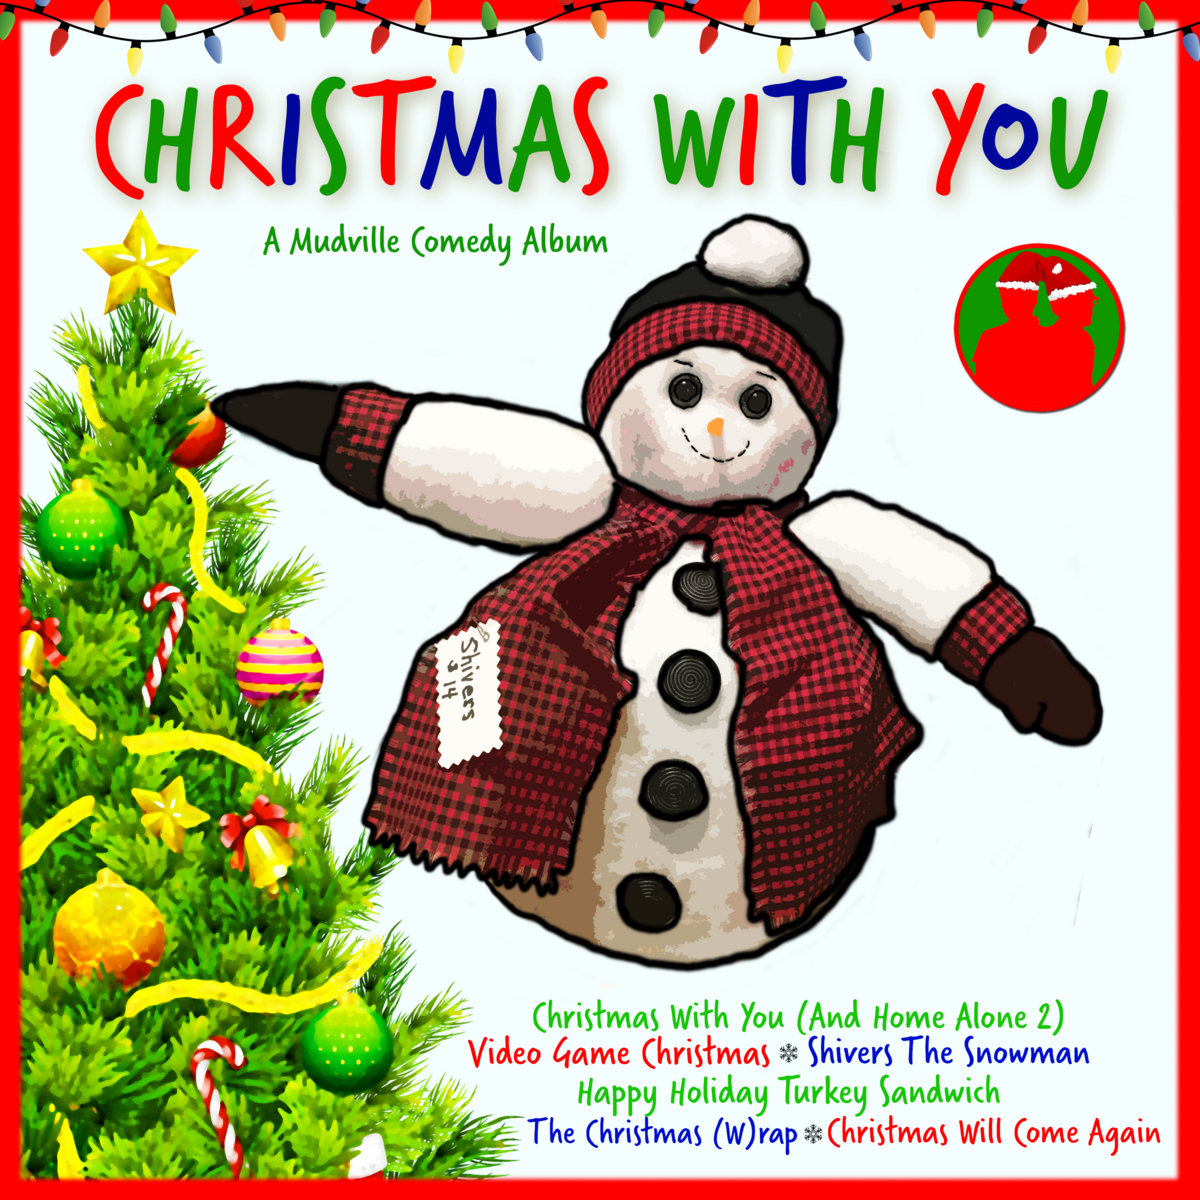 b14085b9bc3 from Christmas With You by Mudville Comedy